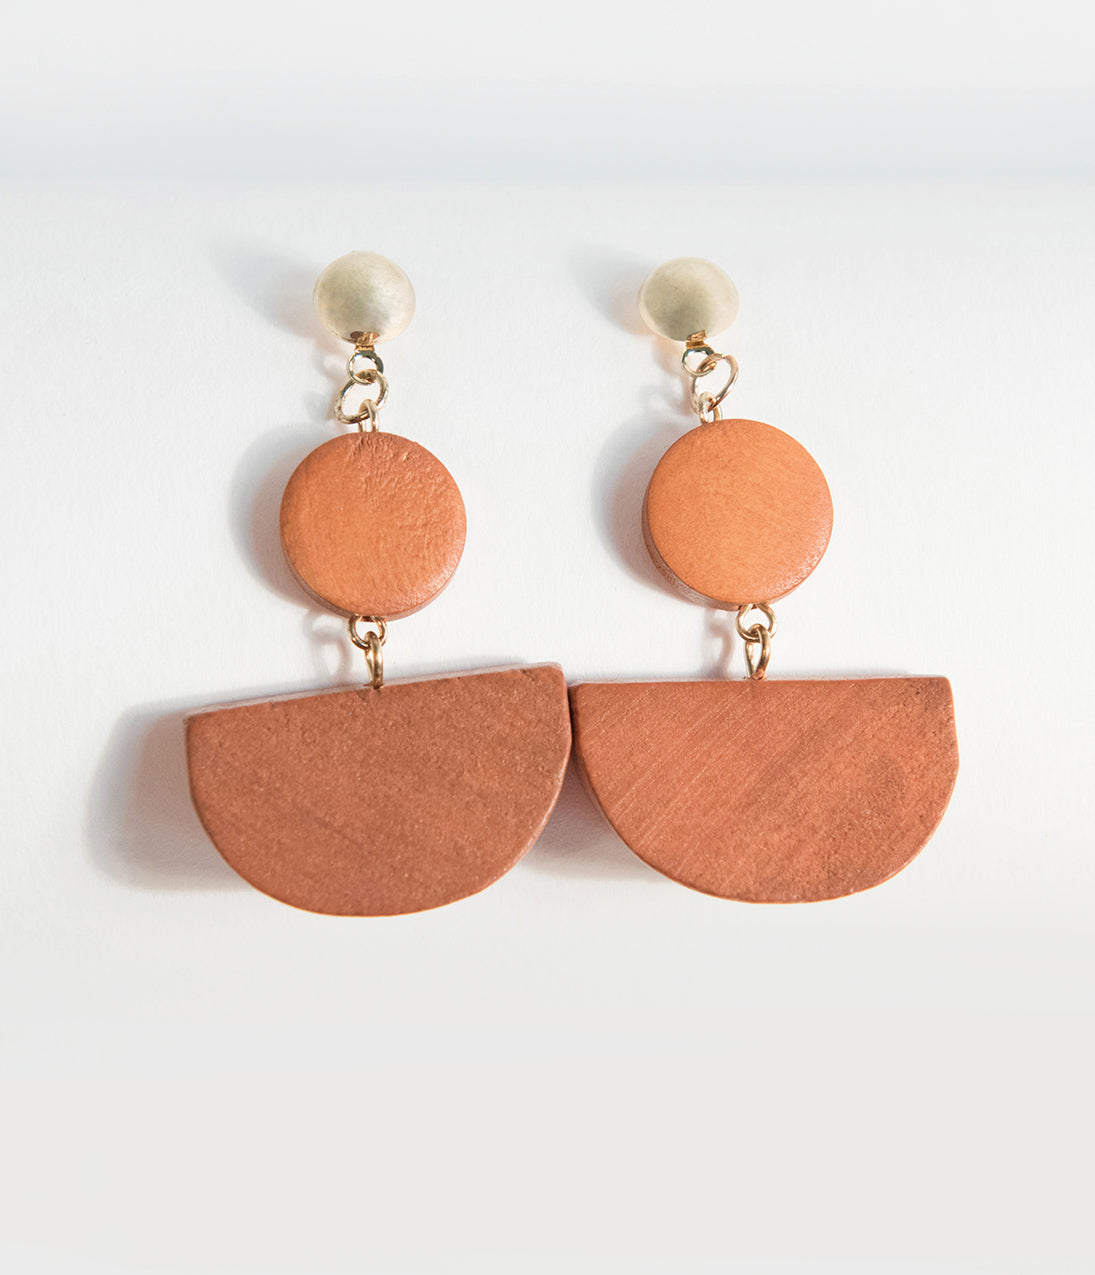 60s -70s Jewelry – Necklaces, Earrings, Rings, Bracelets Retro Style Brown Geometric Wooden Drop Earrings $18.00 AT vintagedancer.com